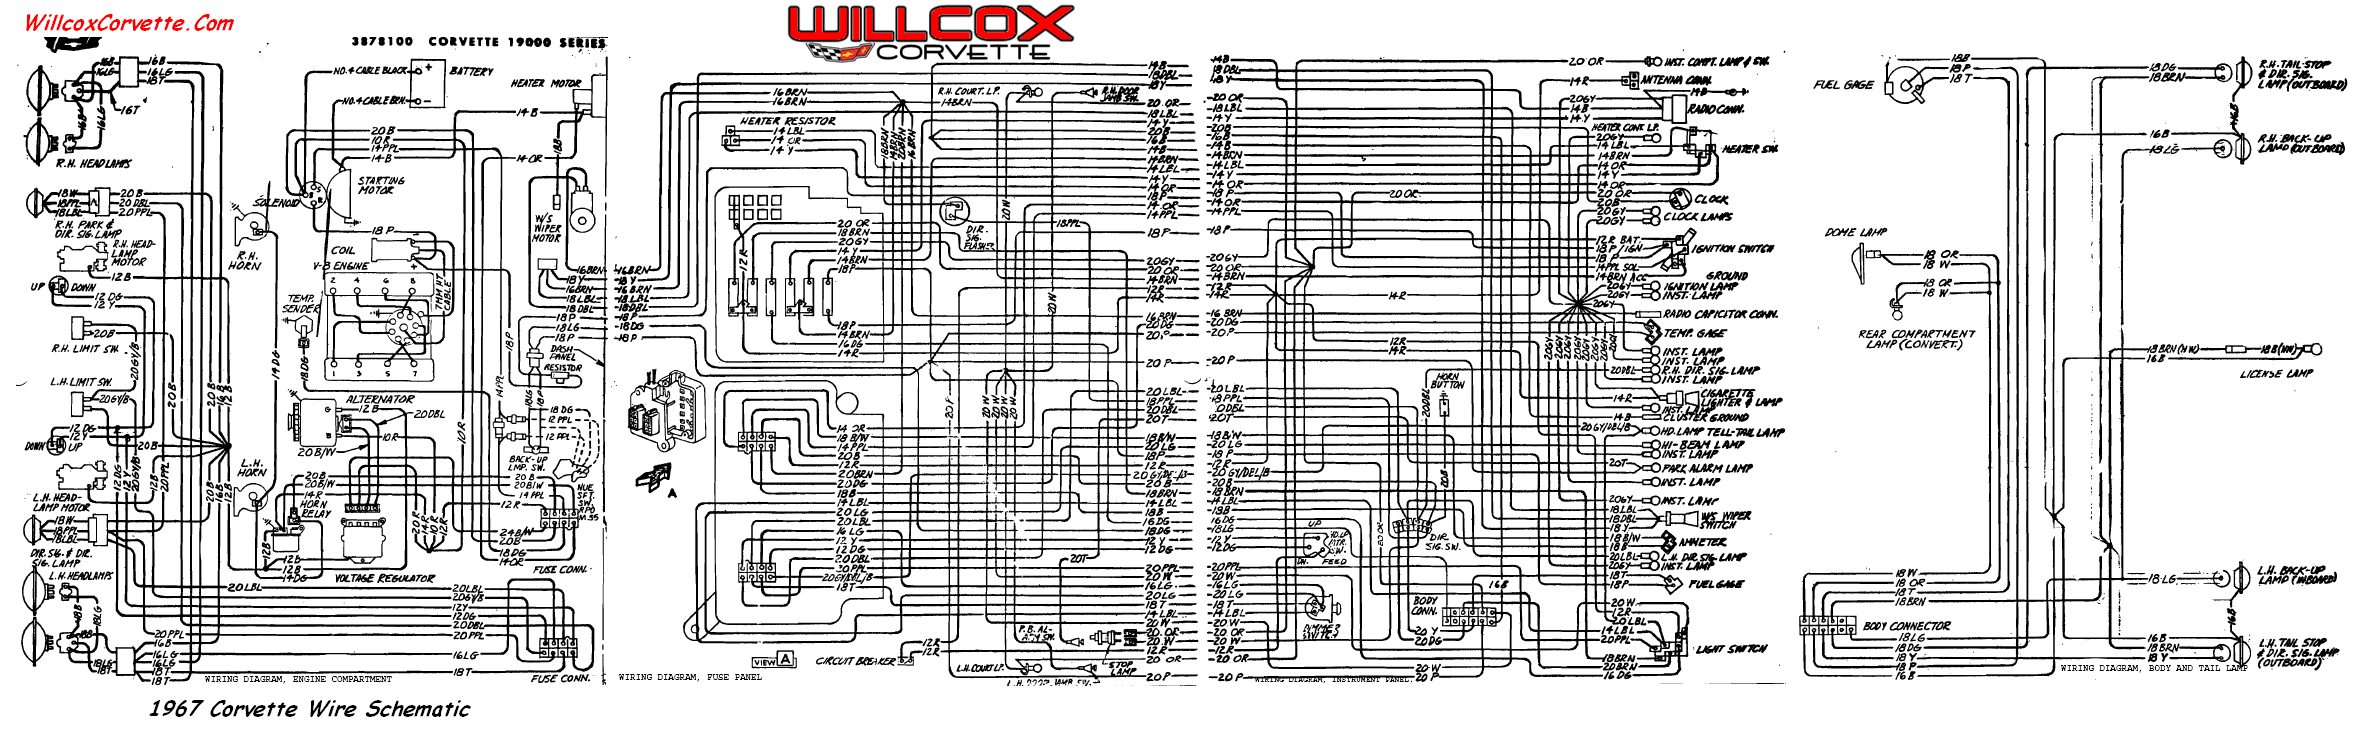 1969 corvette convertible wiring harness wiring diagram wiring rh linxglobal co GM Radio Wiring Harness Diagram 2009 Silverado Radio Wiring Diagram